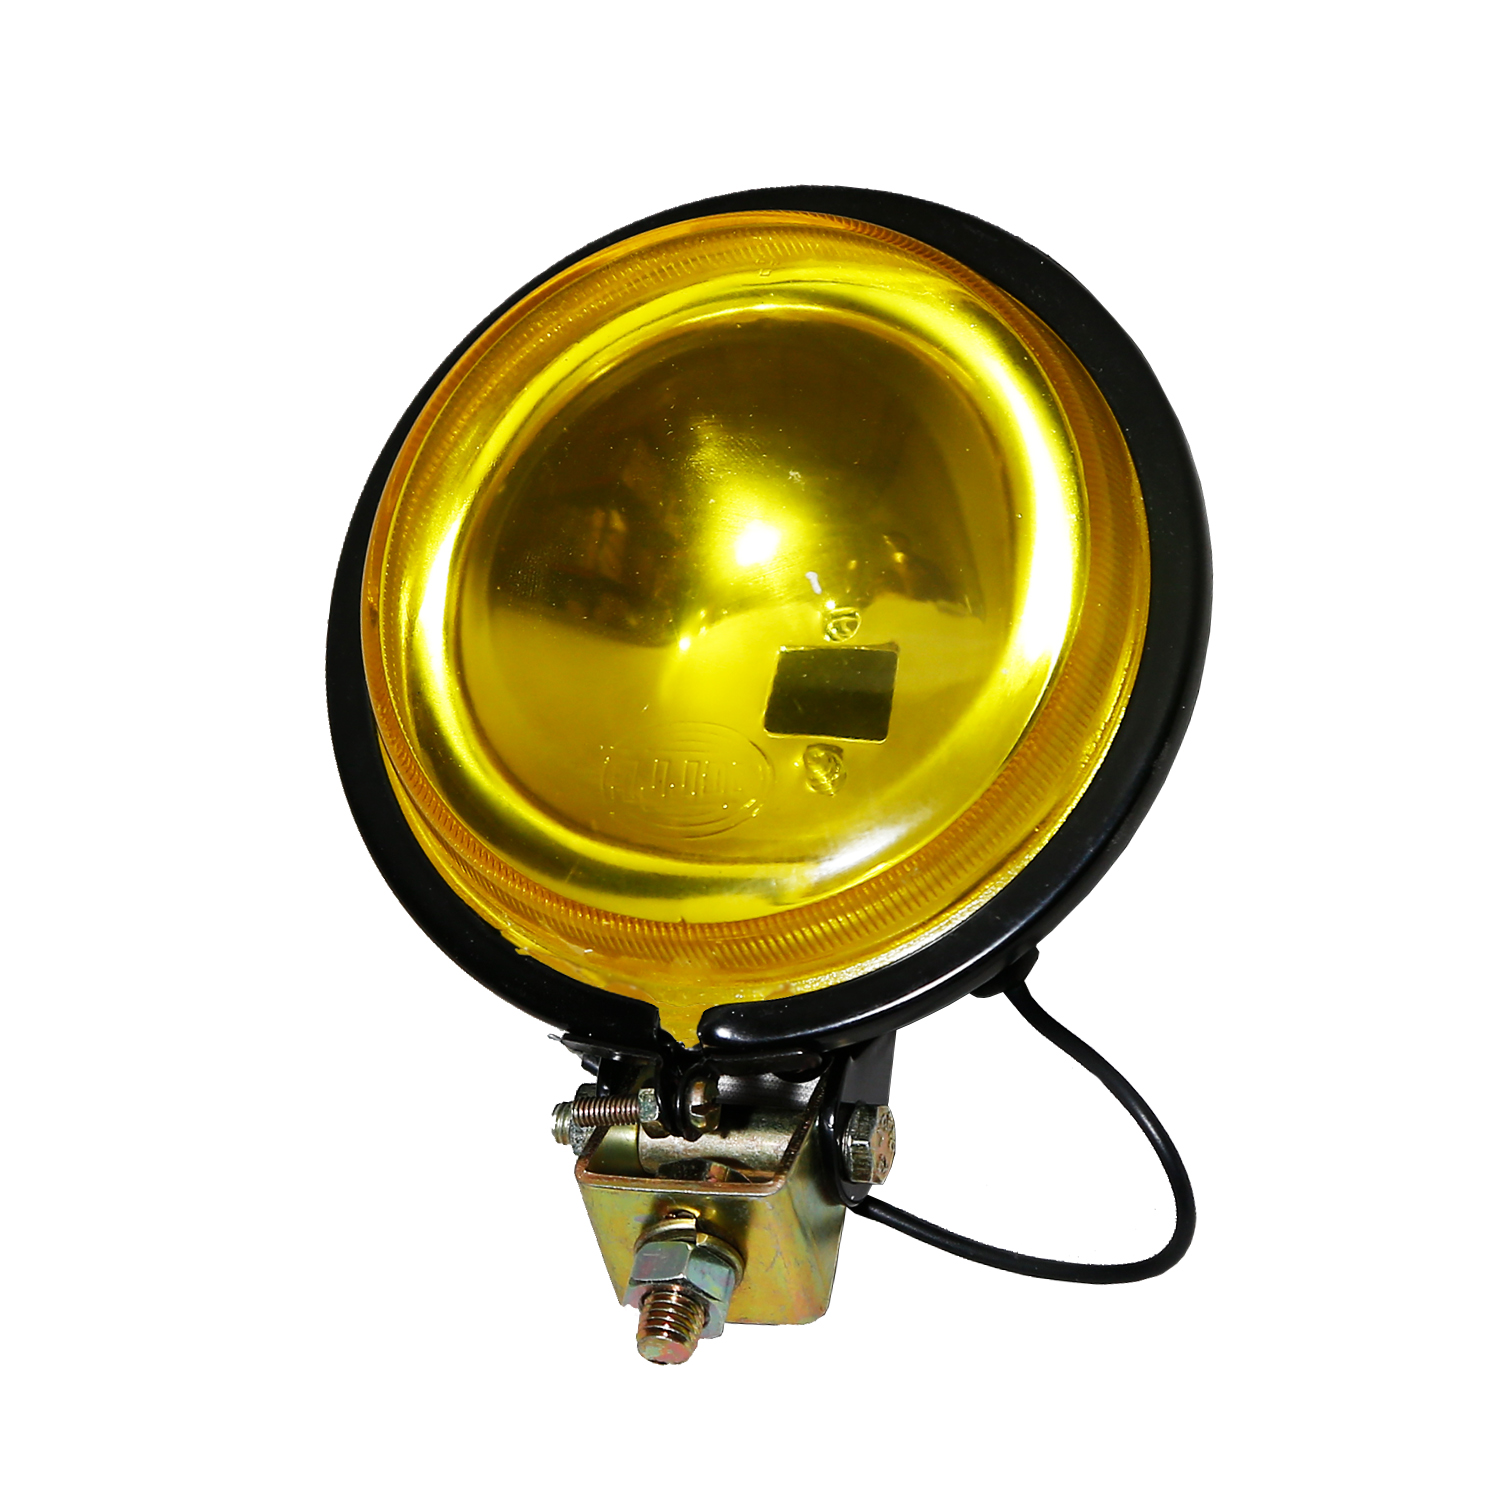 HELLA 328230031 100mm Spot Lamp Yellow Lens Without Bulb - 24V Application